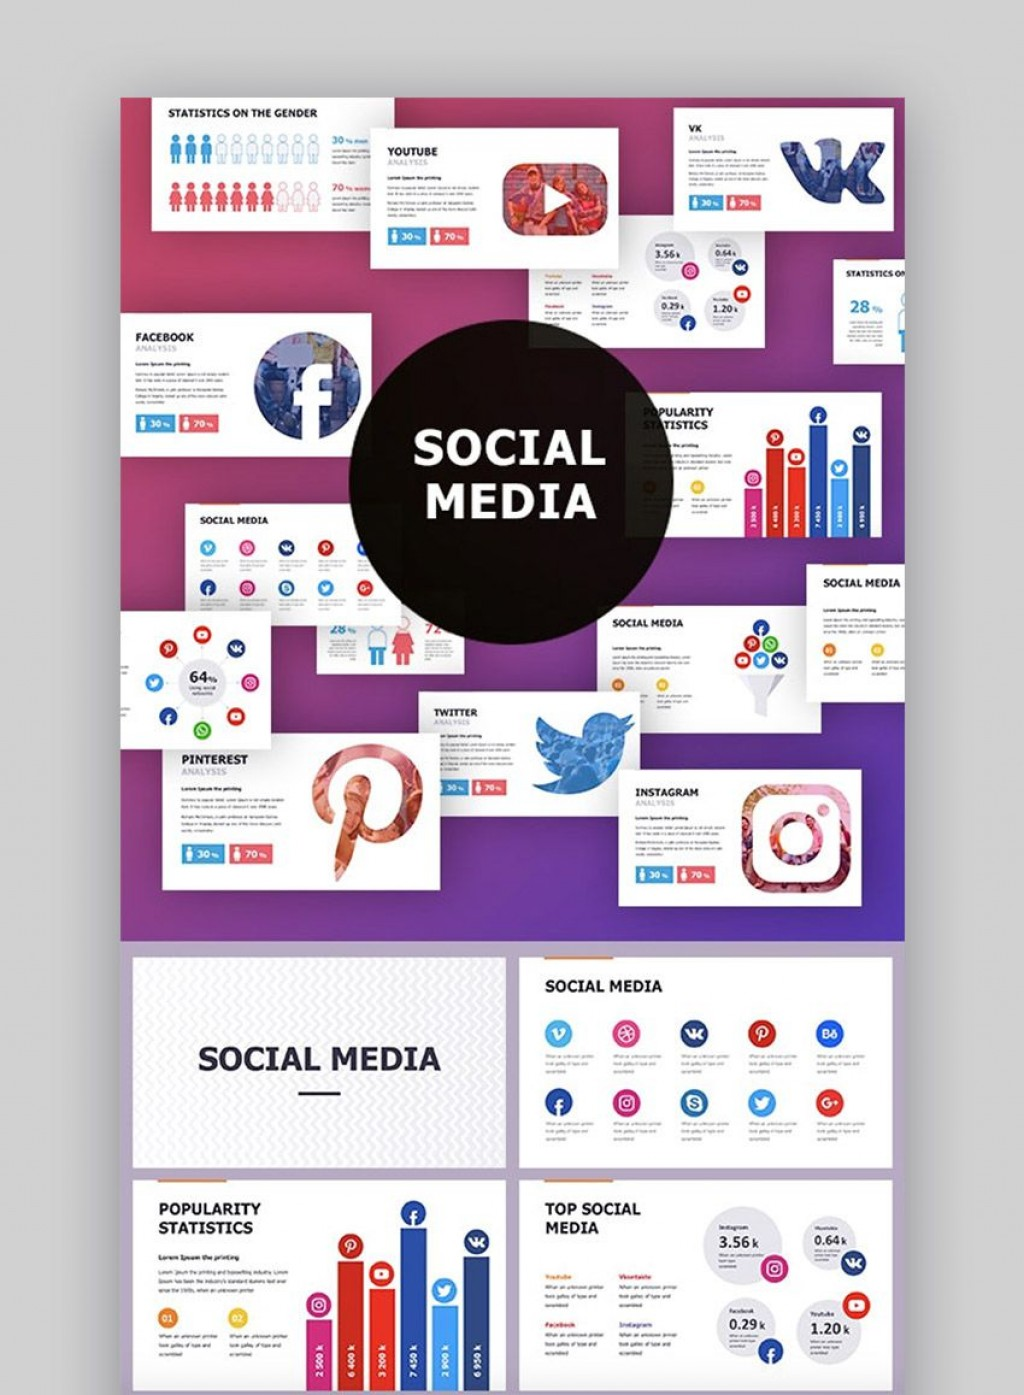 005 Shocking Social Media Strategy Powerpoint Template Image  Marketing Plan FreeLarge